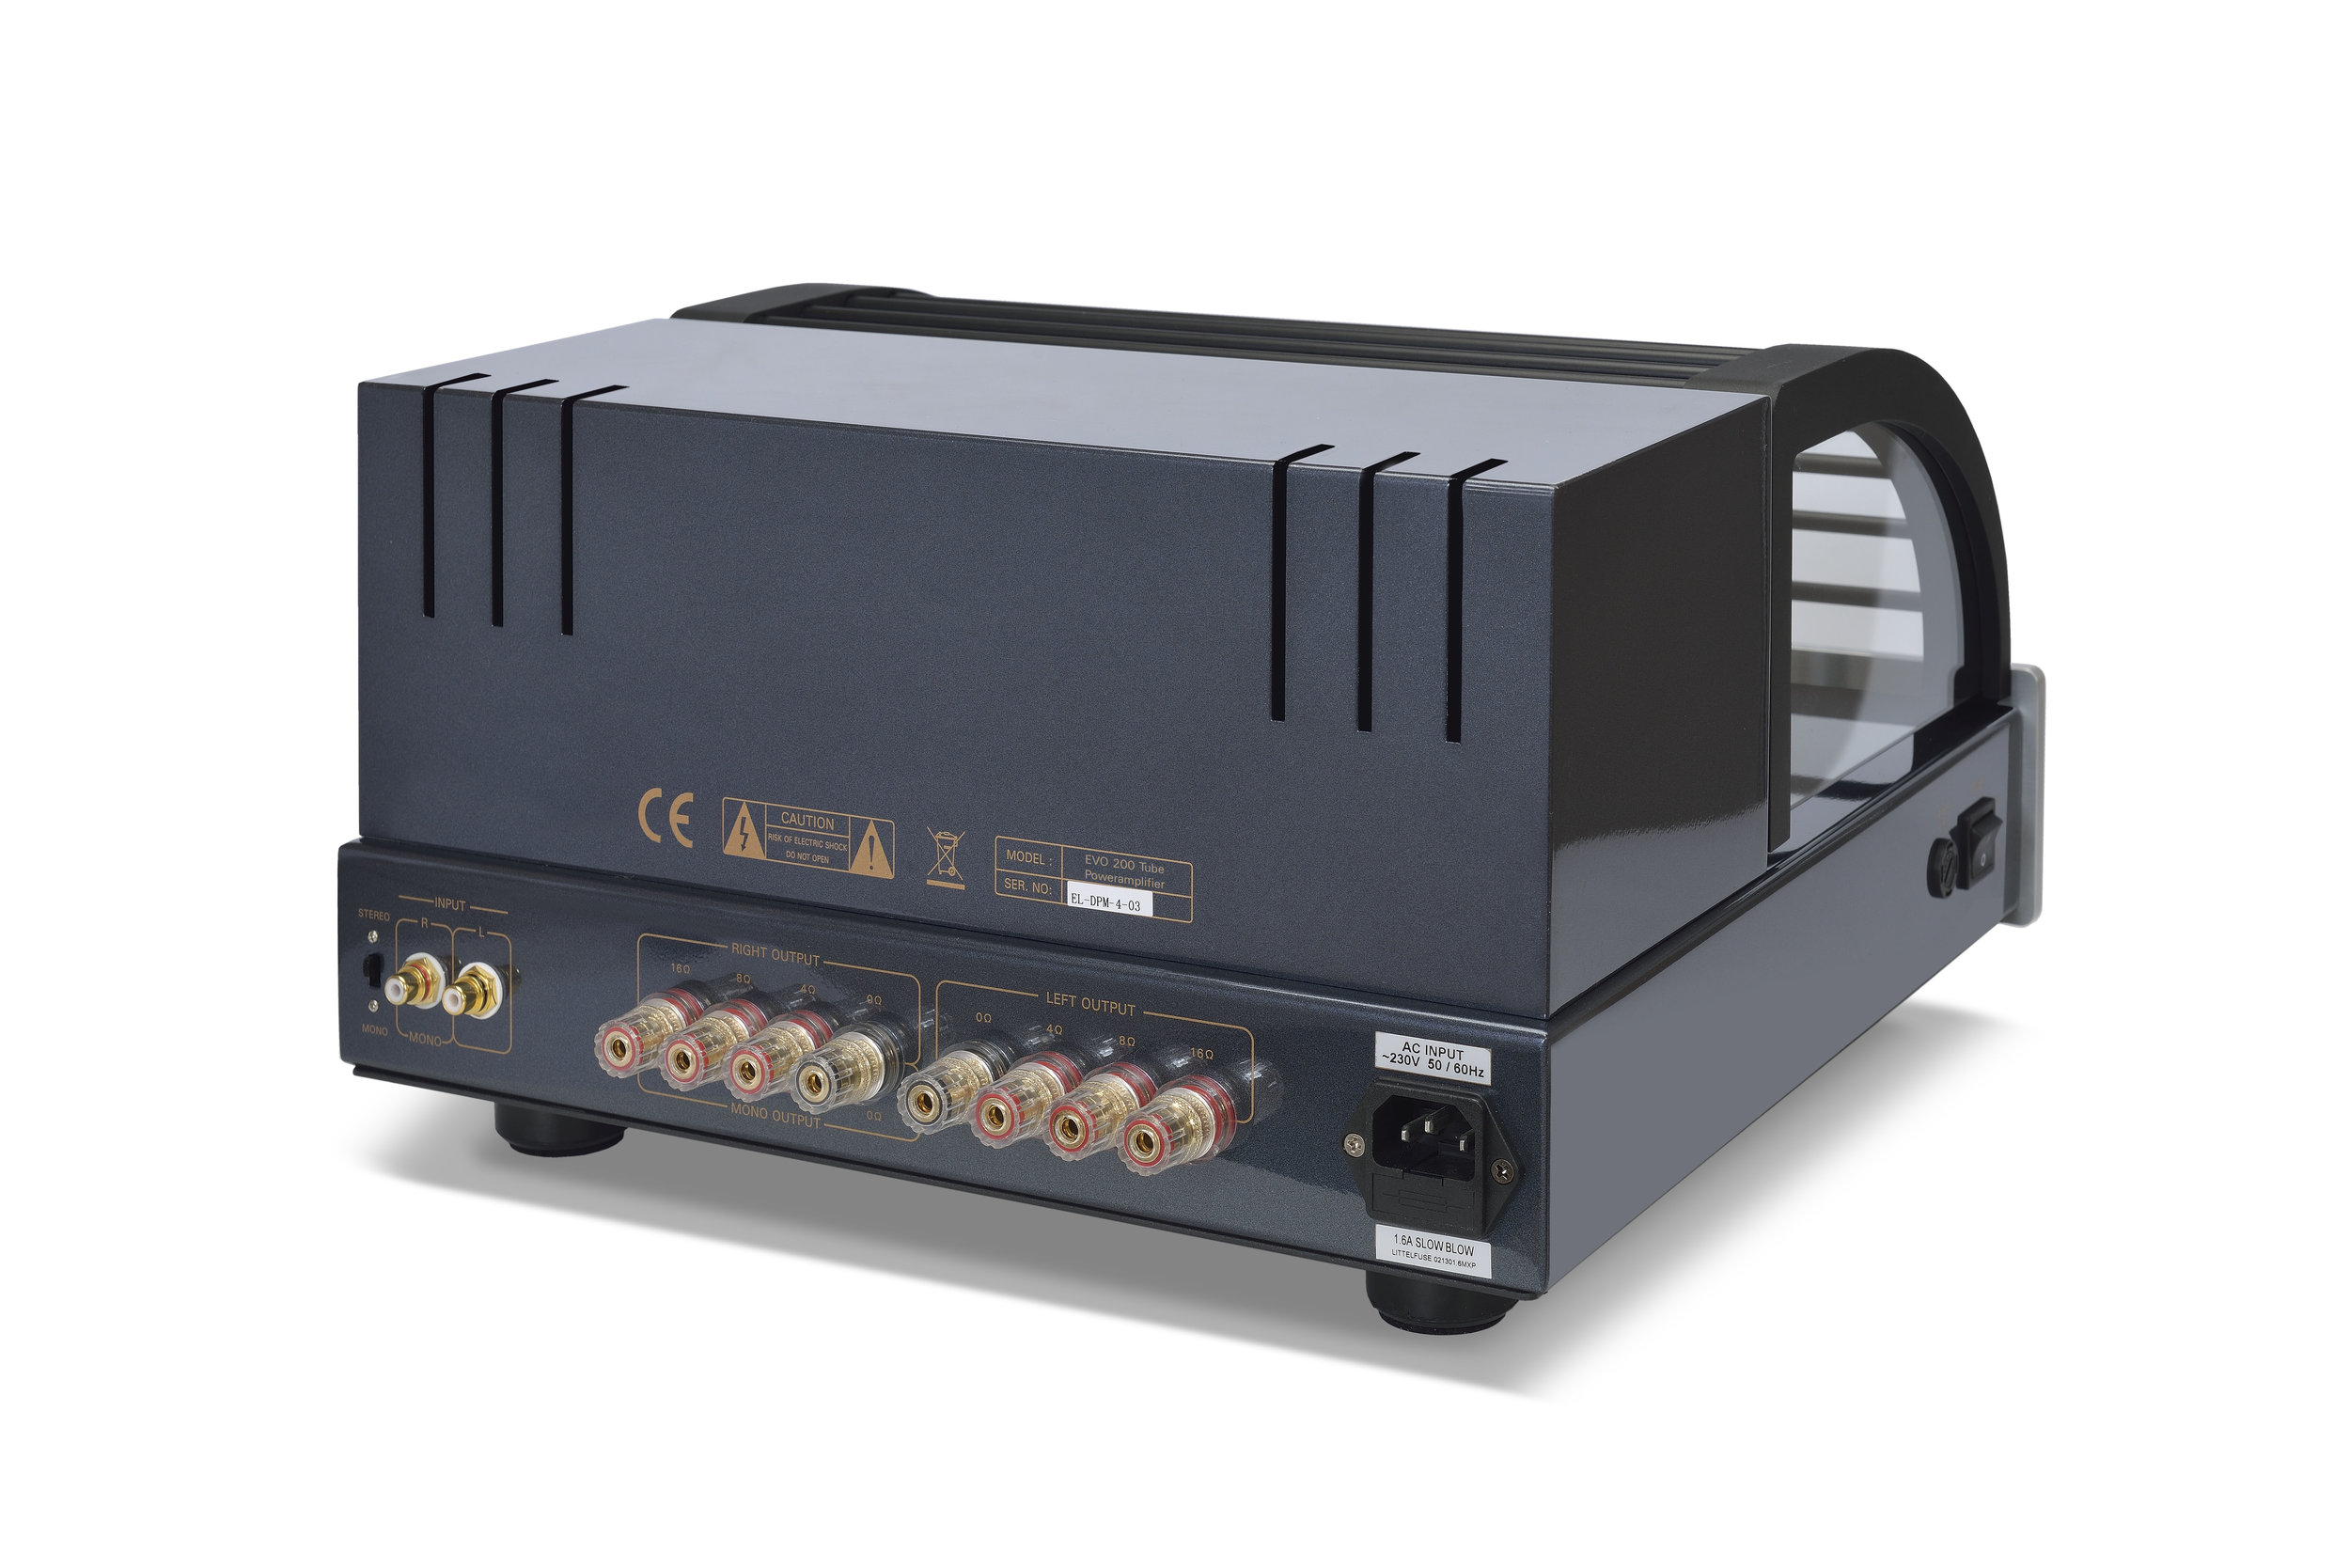 067b - PrimaLuna Evo 200 Tube Poweramplifier - silver - back - slanted - white background.jpg